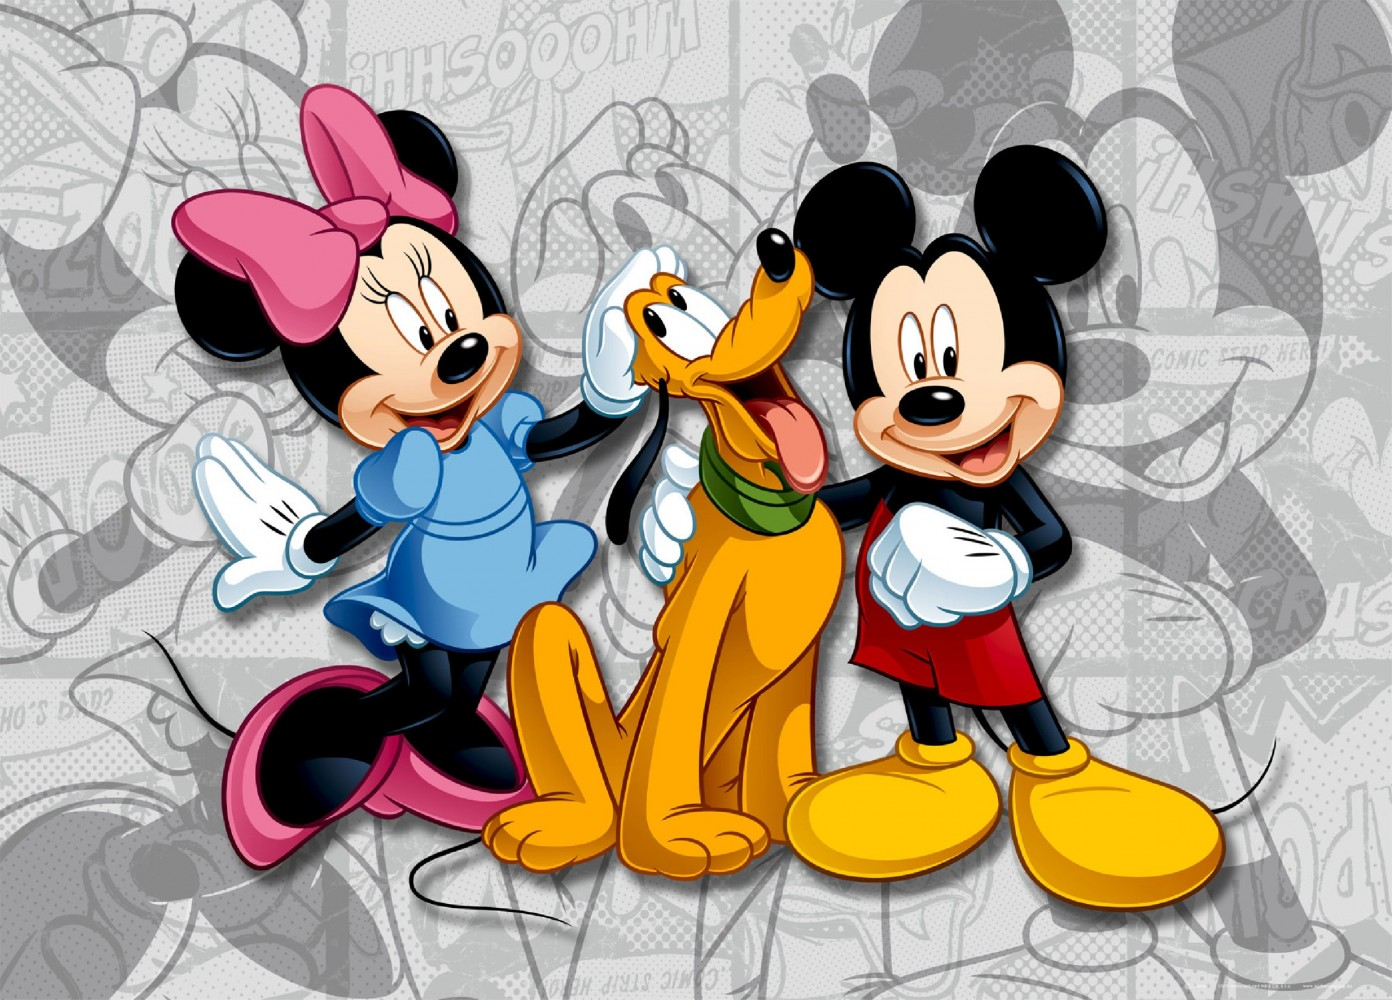 xxl poster wall mural wallpaper disney micky mouse minni pluto photo 160 cm x 115 cm. Black Bedroom Furniture Sets. Home Design Ideas